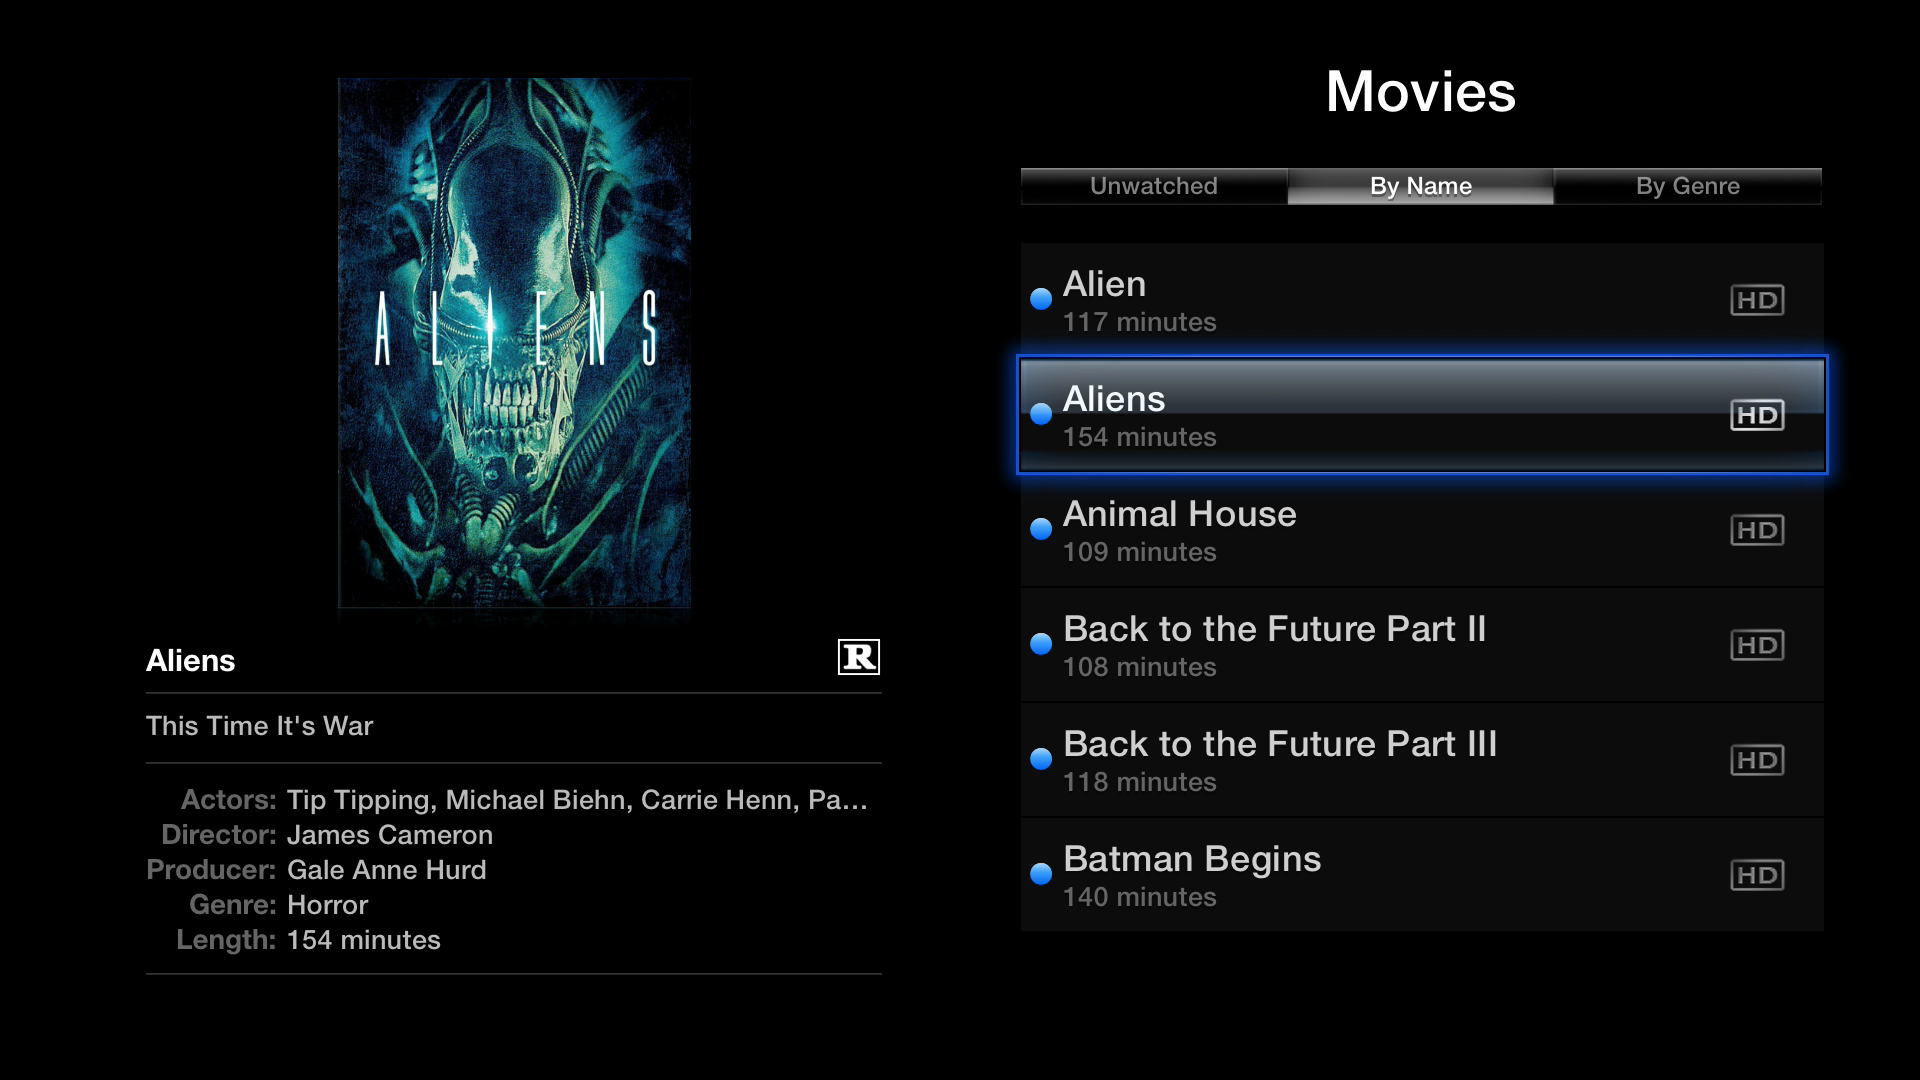 Figure 10: You can access all the movies in your iTunes library from the Apple TV, and sort them by name, genre, or see what you haven't watched yet.